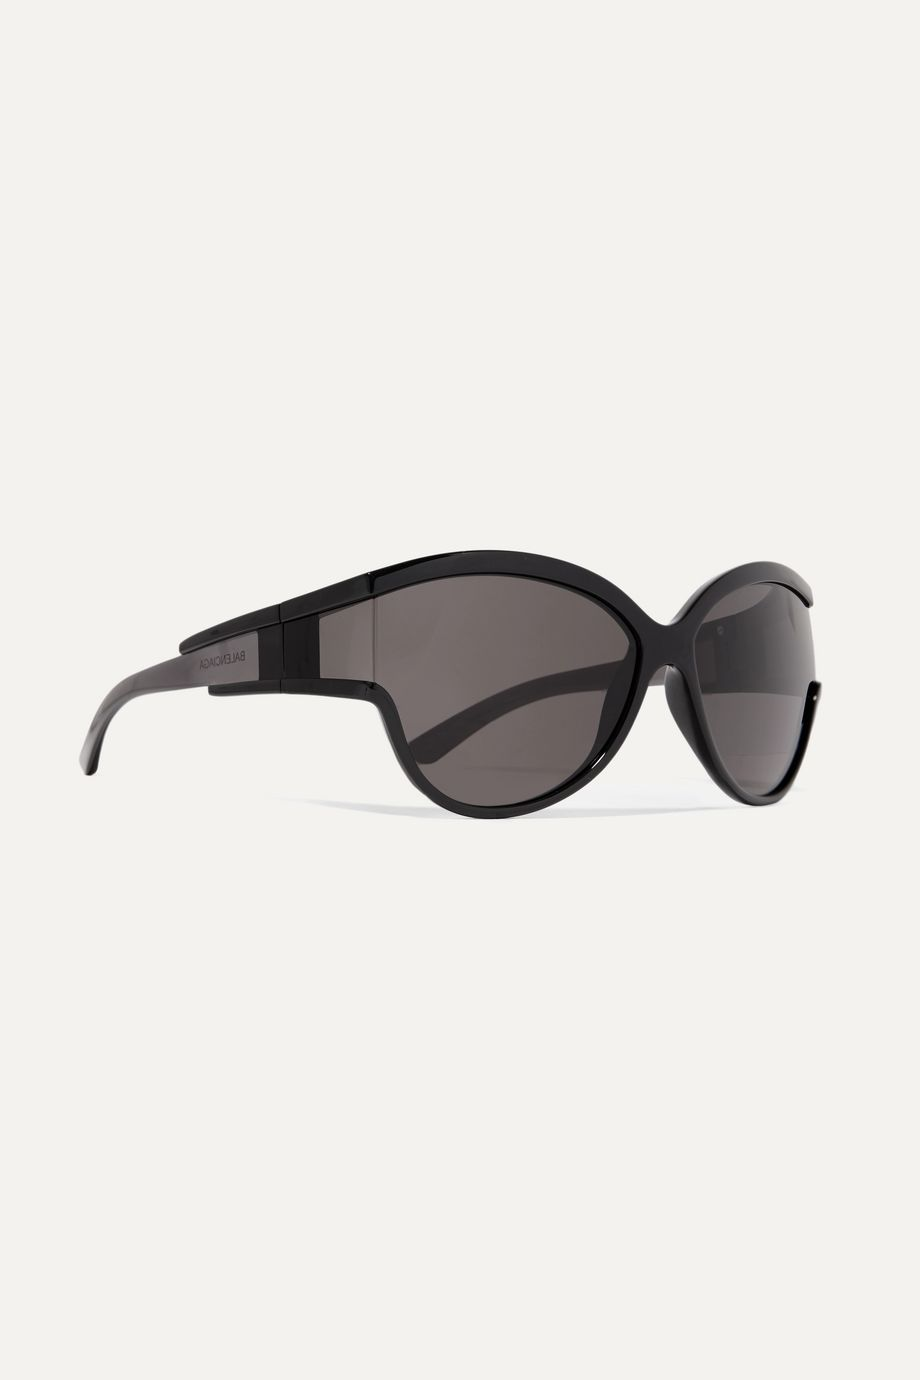 Balenciaga Unlimited cat-eye acetate sunglasses